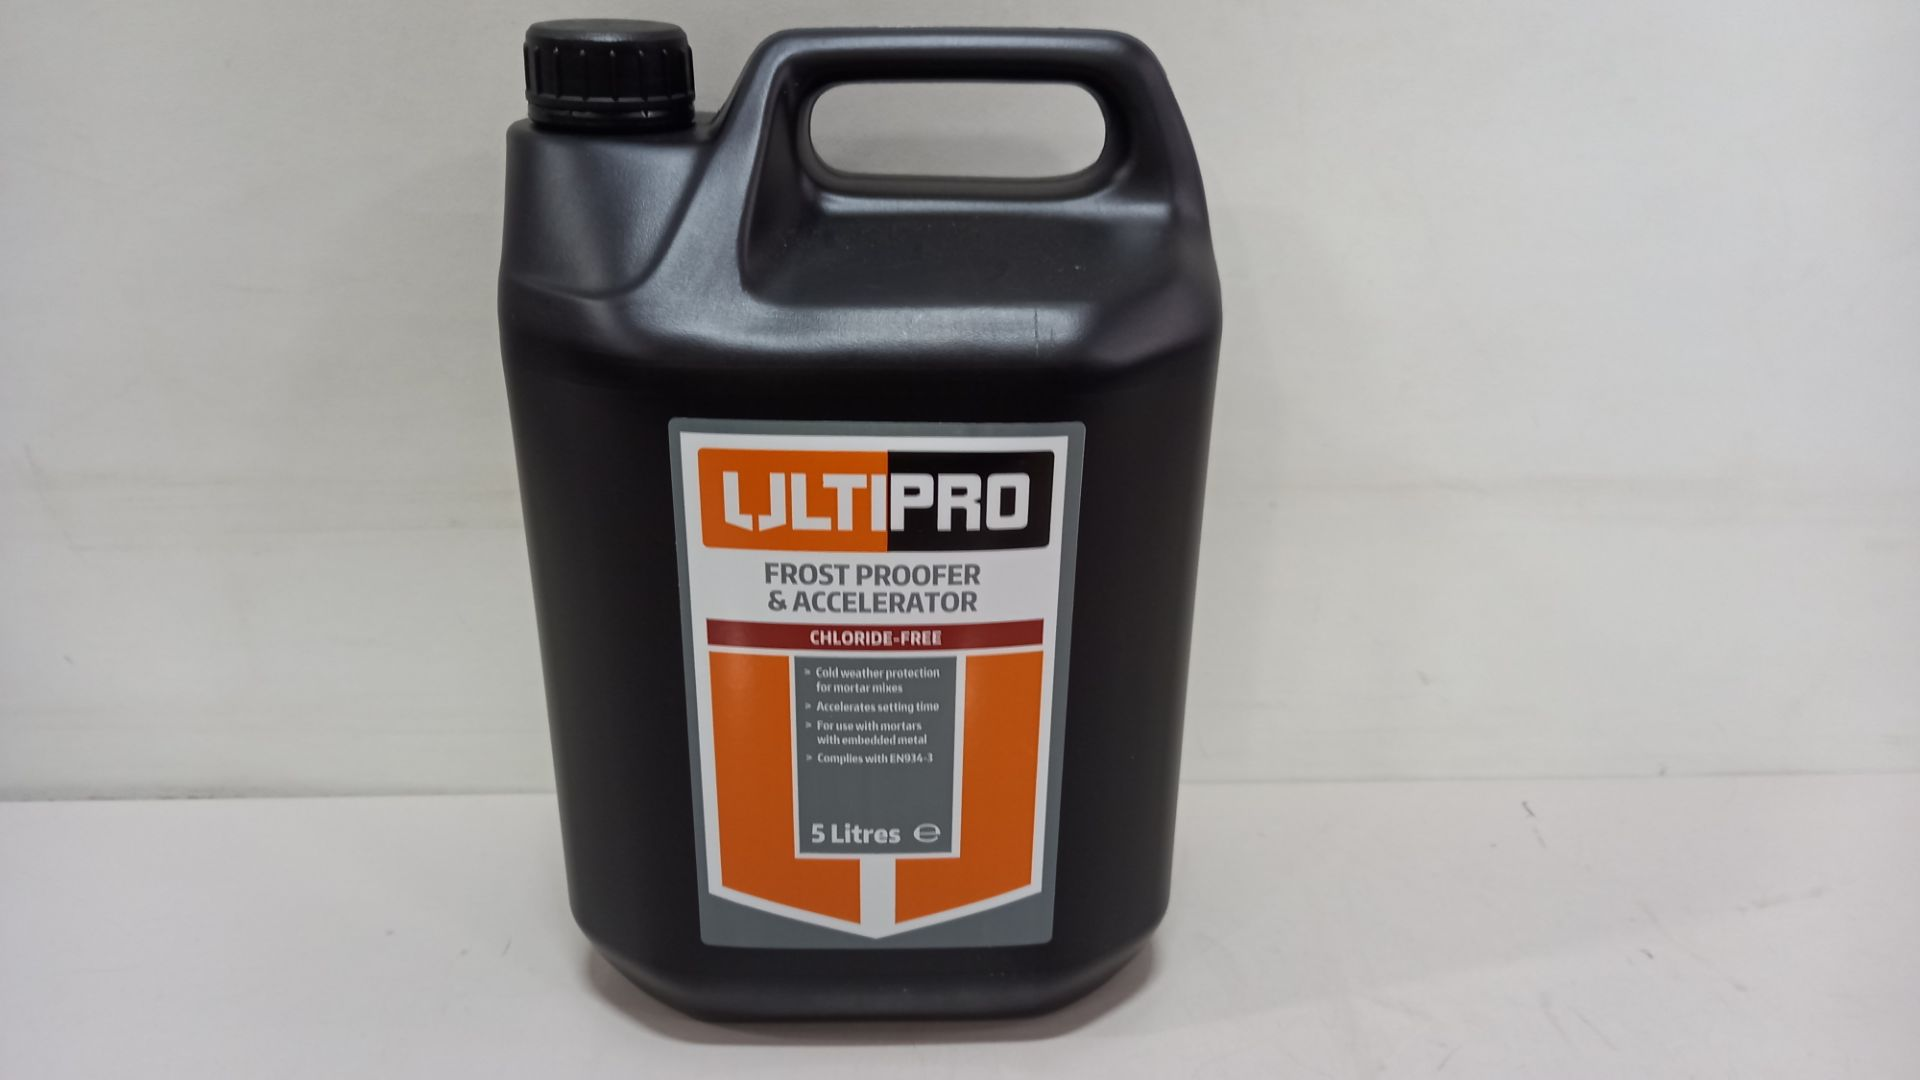 60 X BRAND NEW ULTIPRO FROST PROOFER & ACCELERATOR (5LITRES) - IN 15 BOXES